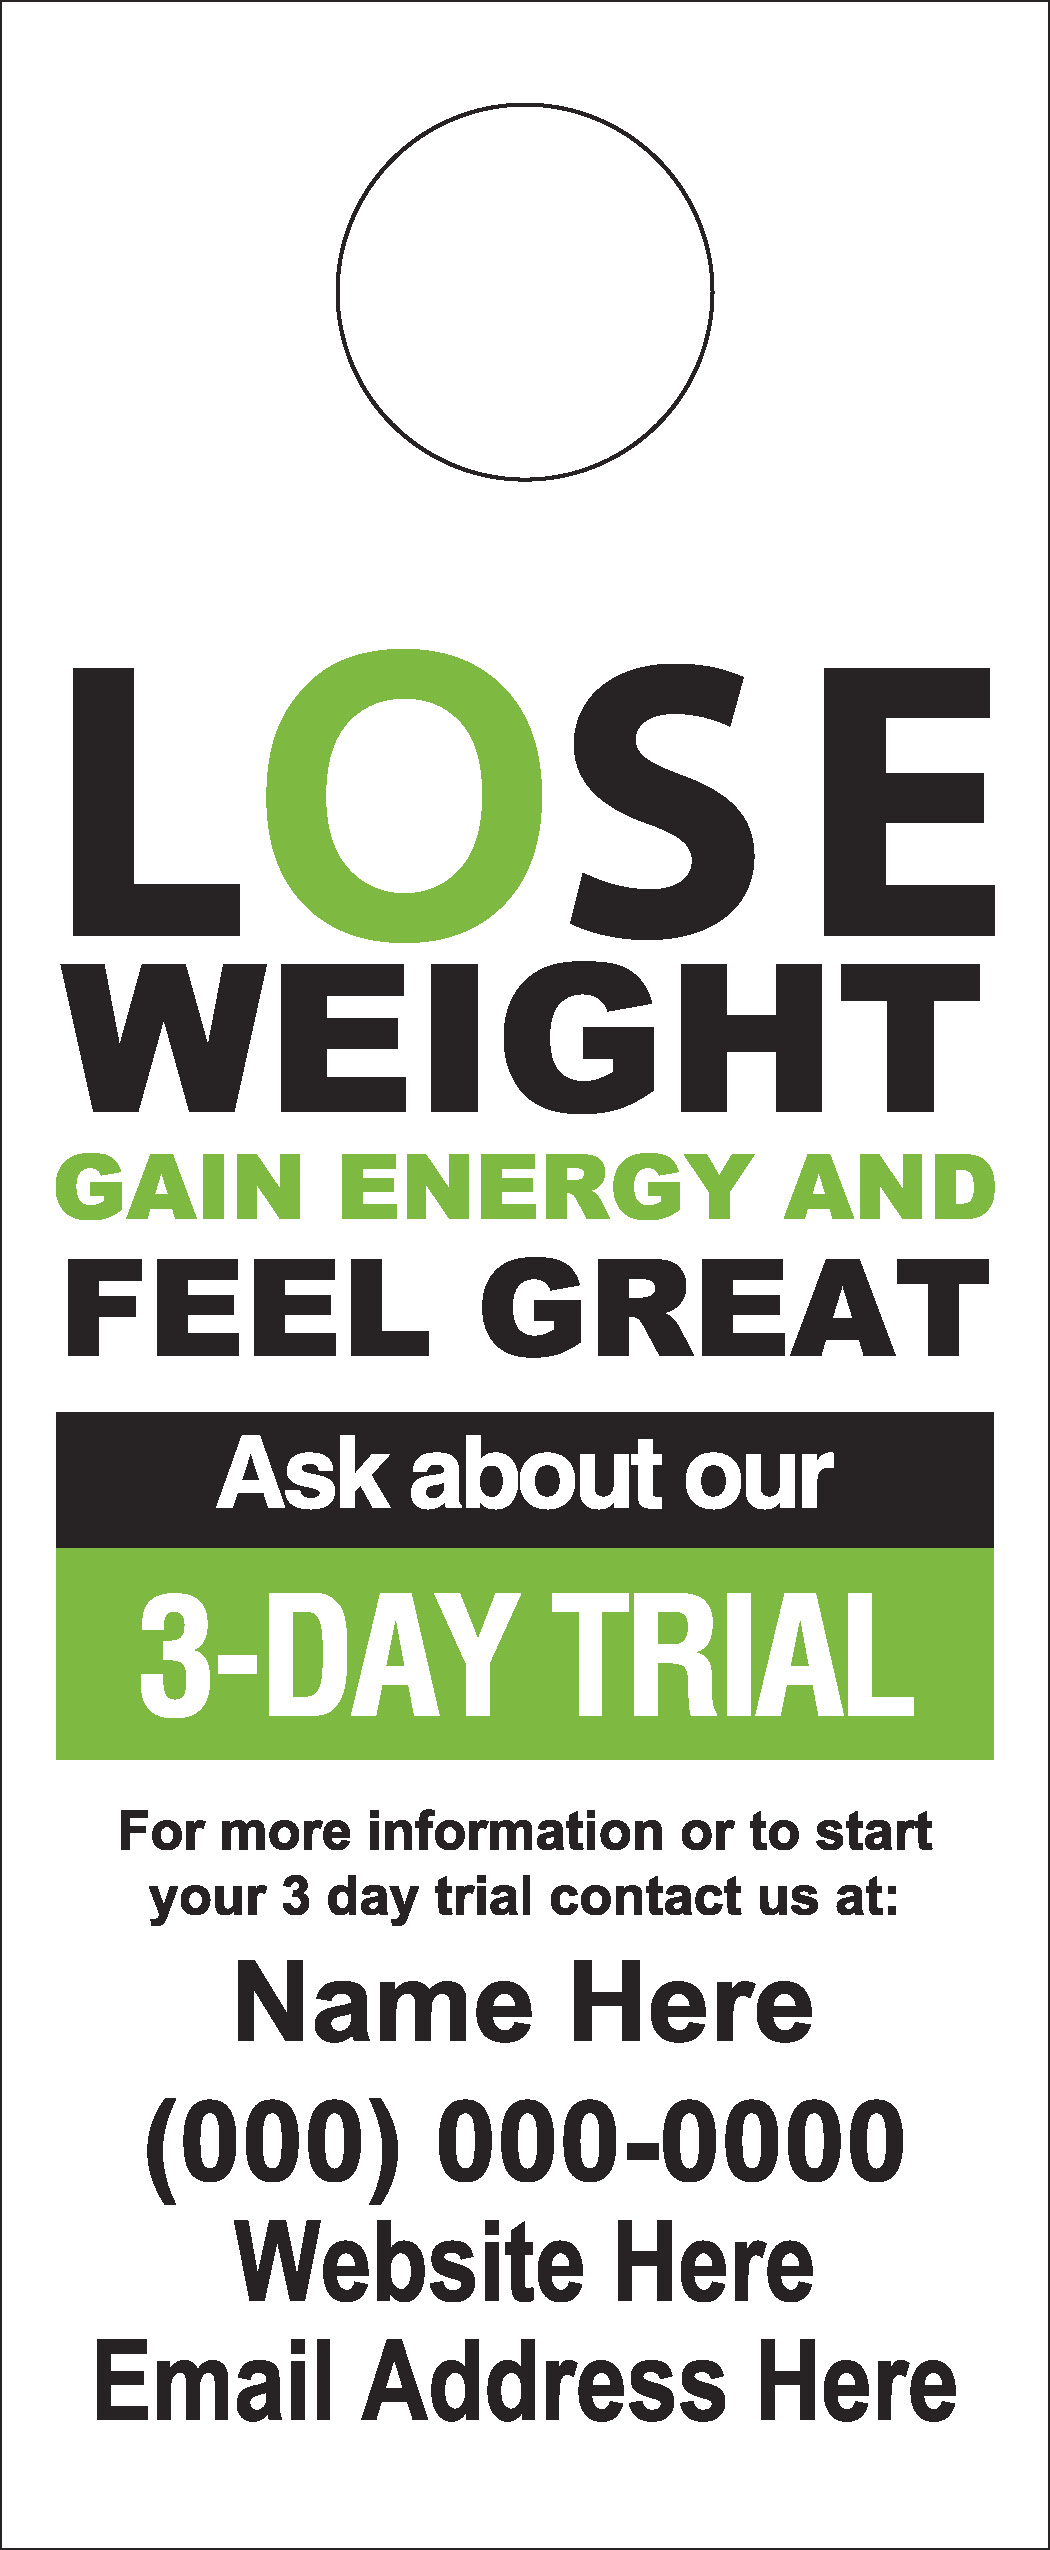 lose weight feel great